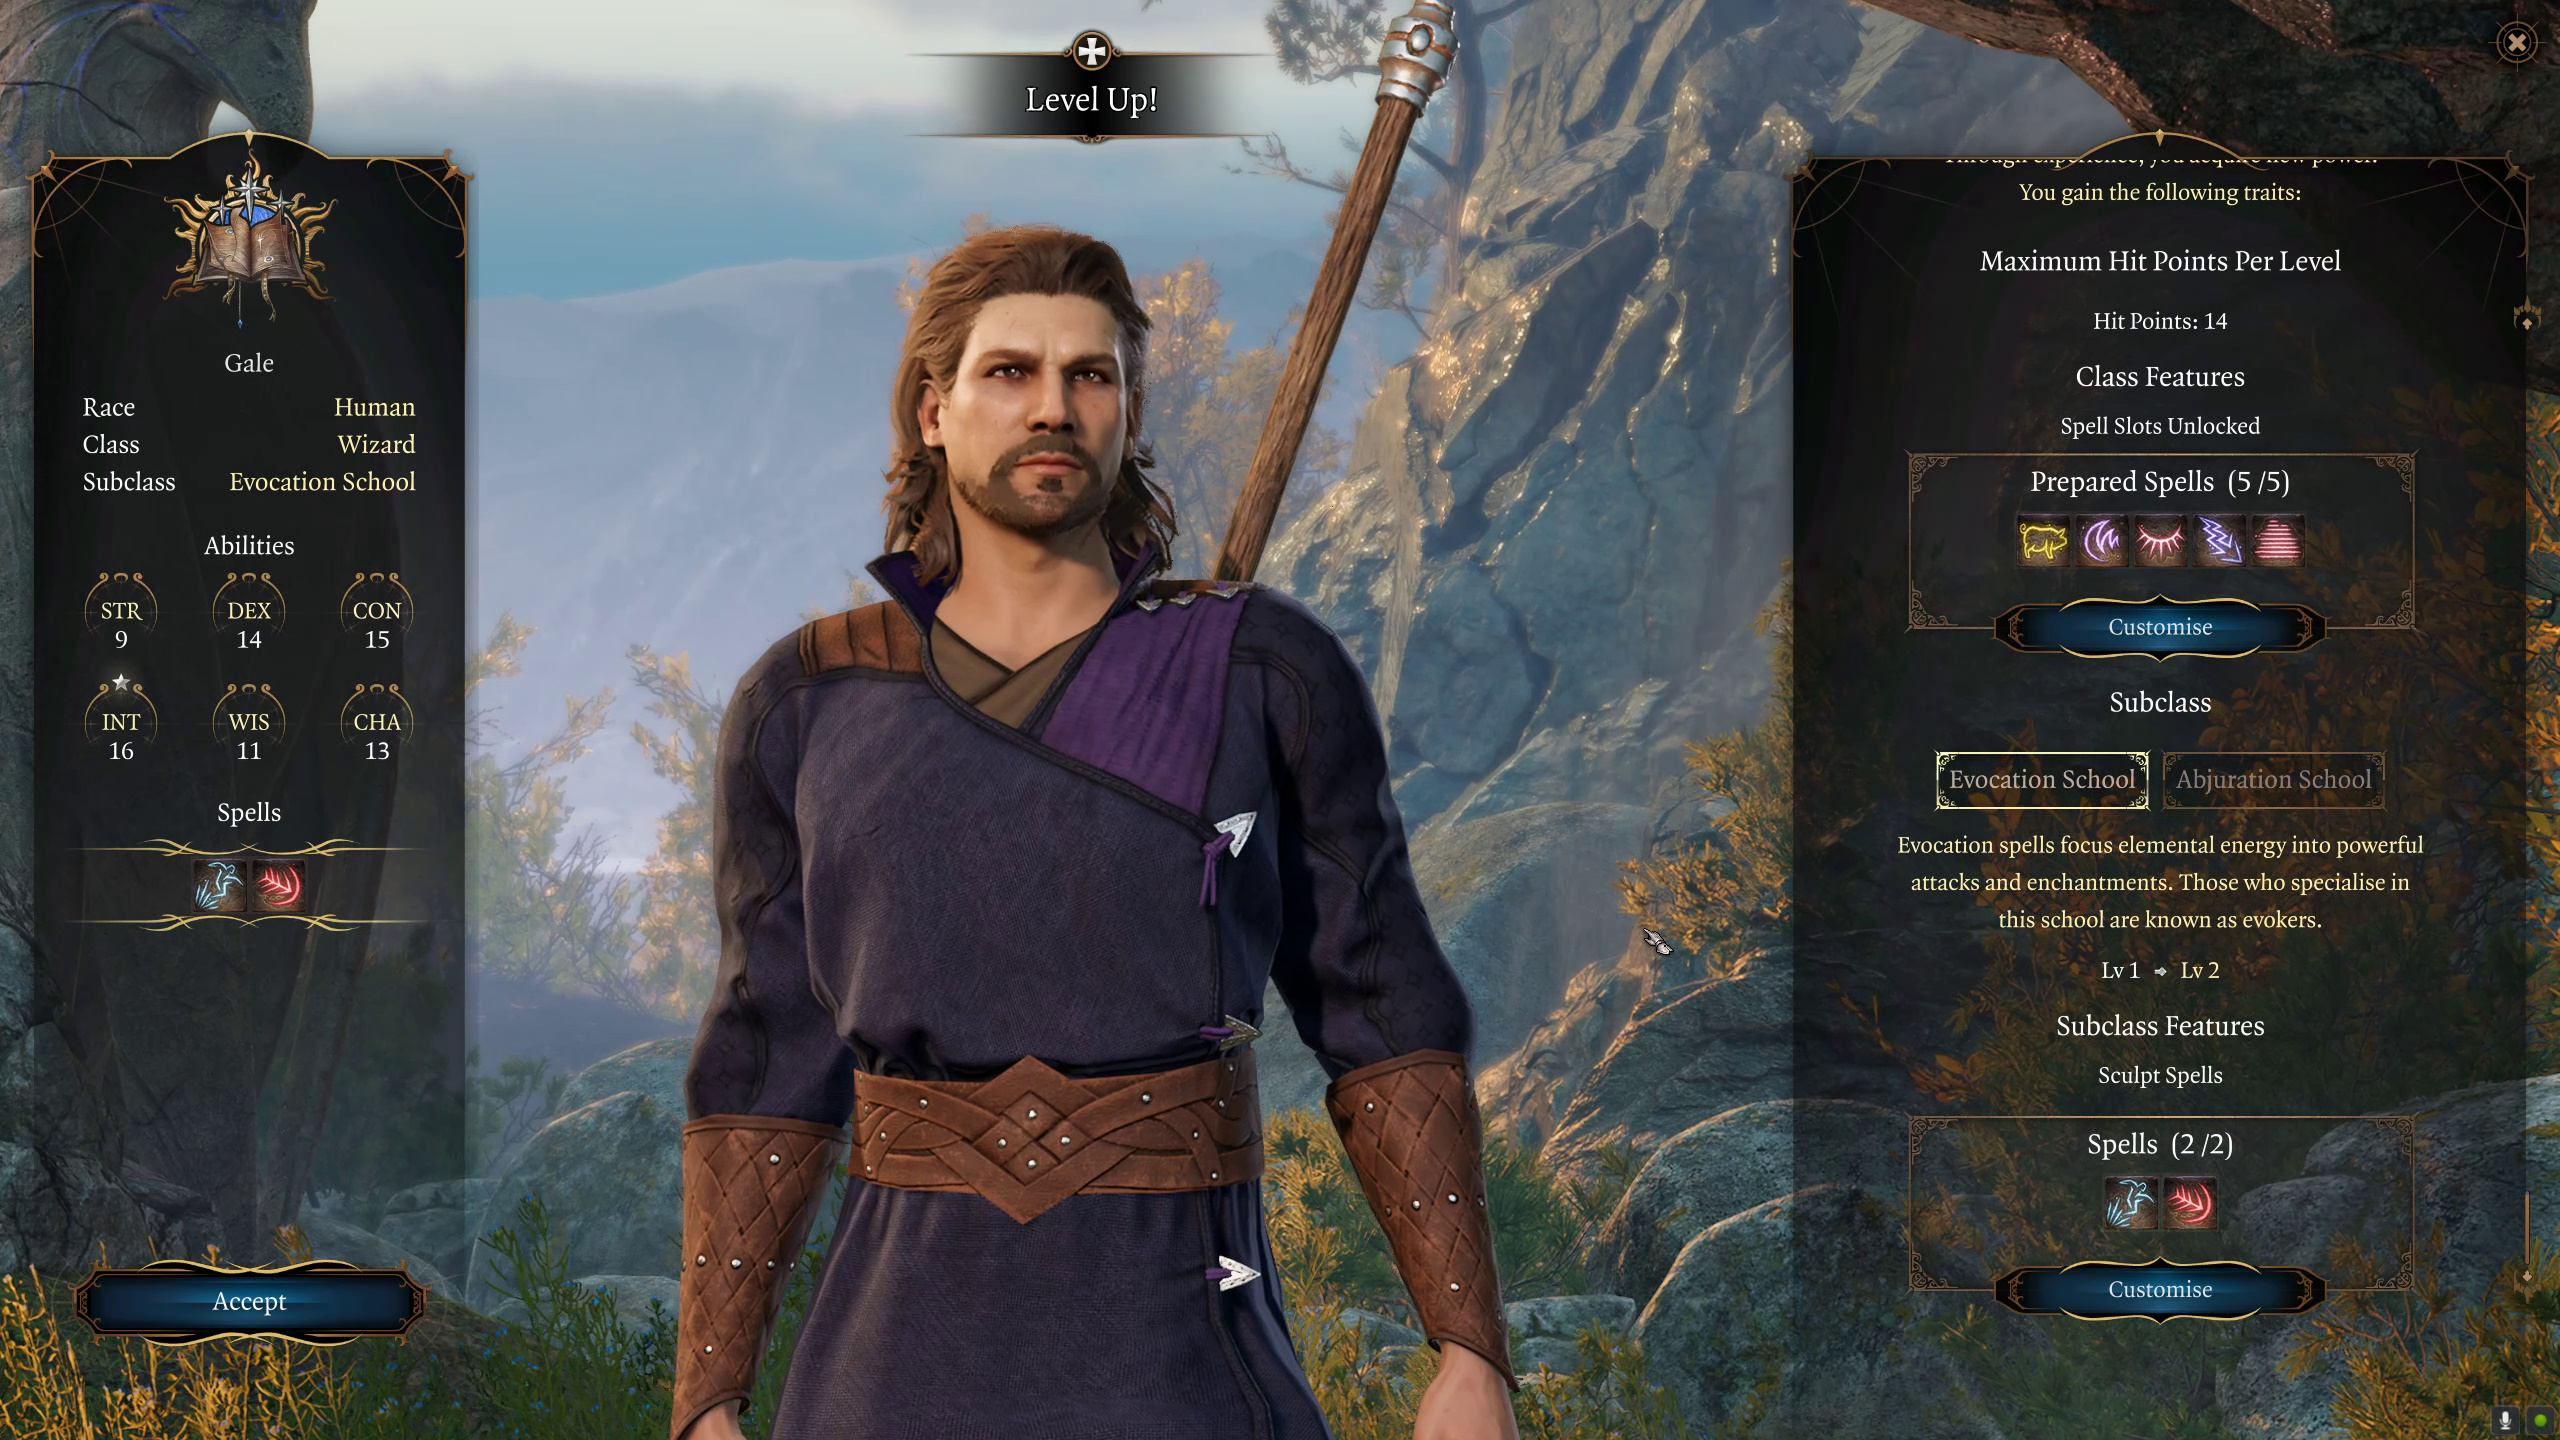 A screenshot of Gale the wizard from Baldur's Gate 3. He is a white human male around 30, with standard wizard-issue shoulder length brown hair and a goatee. He has a blue tunic, belted at the waist with a brown leather belt, and has a staff across his back.